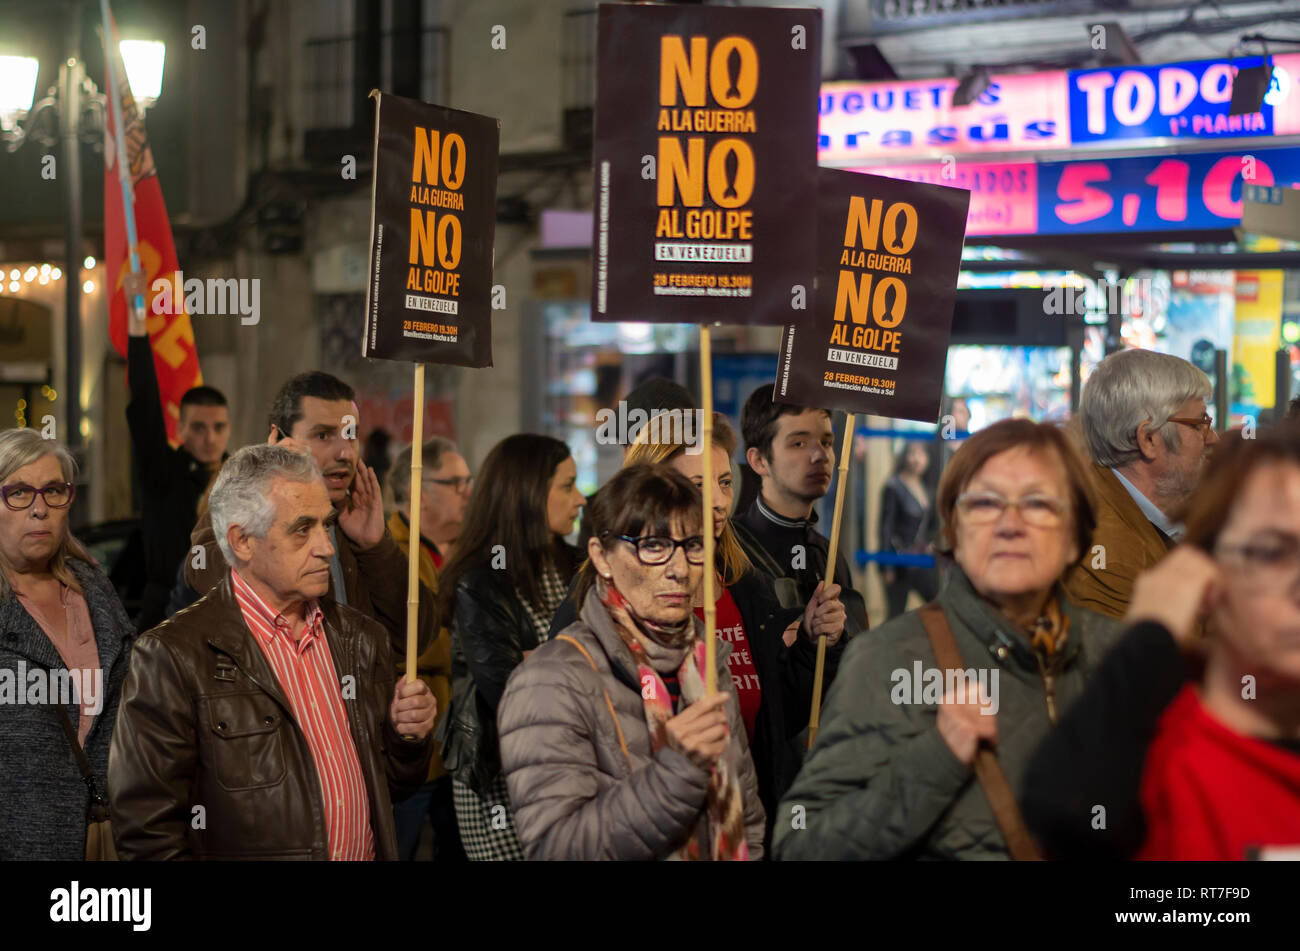 """Madrid, Spain. 28th Feb, 2019. Hundreds of people protested against the intervention of United States in Venezuela marching from Atocha to Puerta del Sol in Madrid. In the picture, people at the protest with placards that says """"No to the coup"""" Credit: Lora Grigorova/Alamy Live News Stock Photo"""